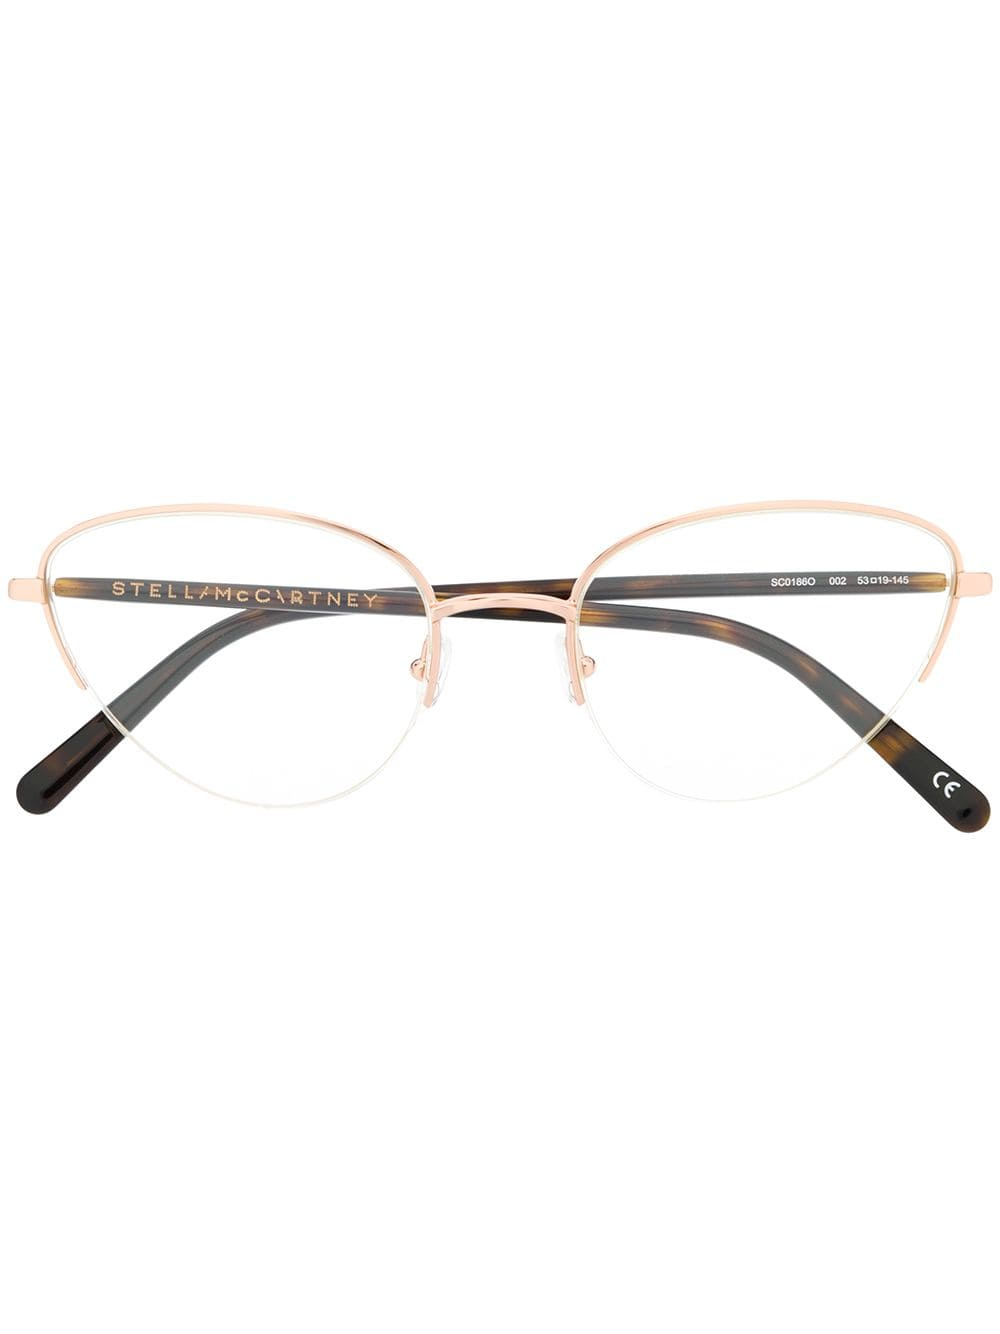 fca03c7e2862 Stella McCartney Eyewear cat eye frame glasses - Brown in 2019 ...